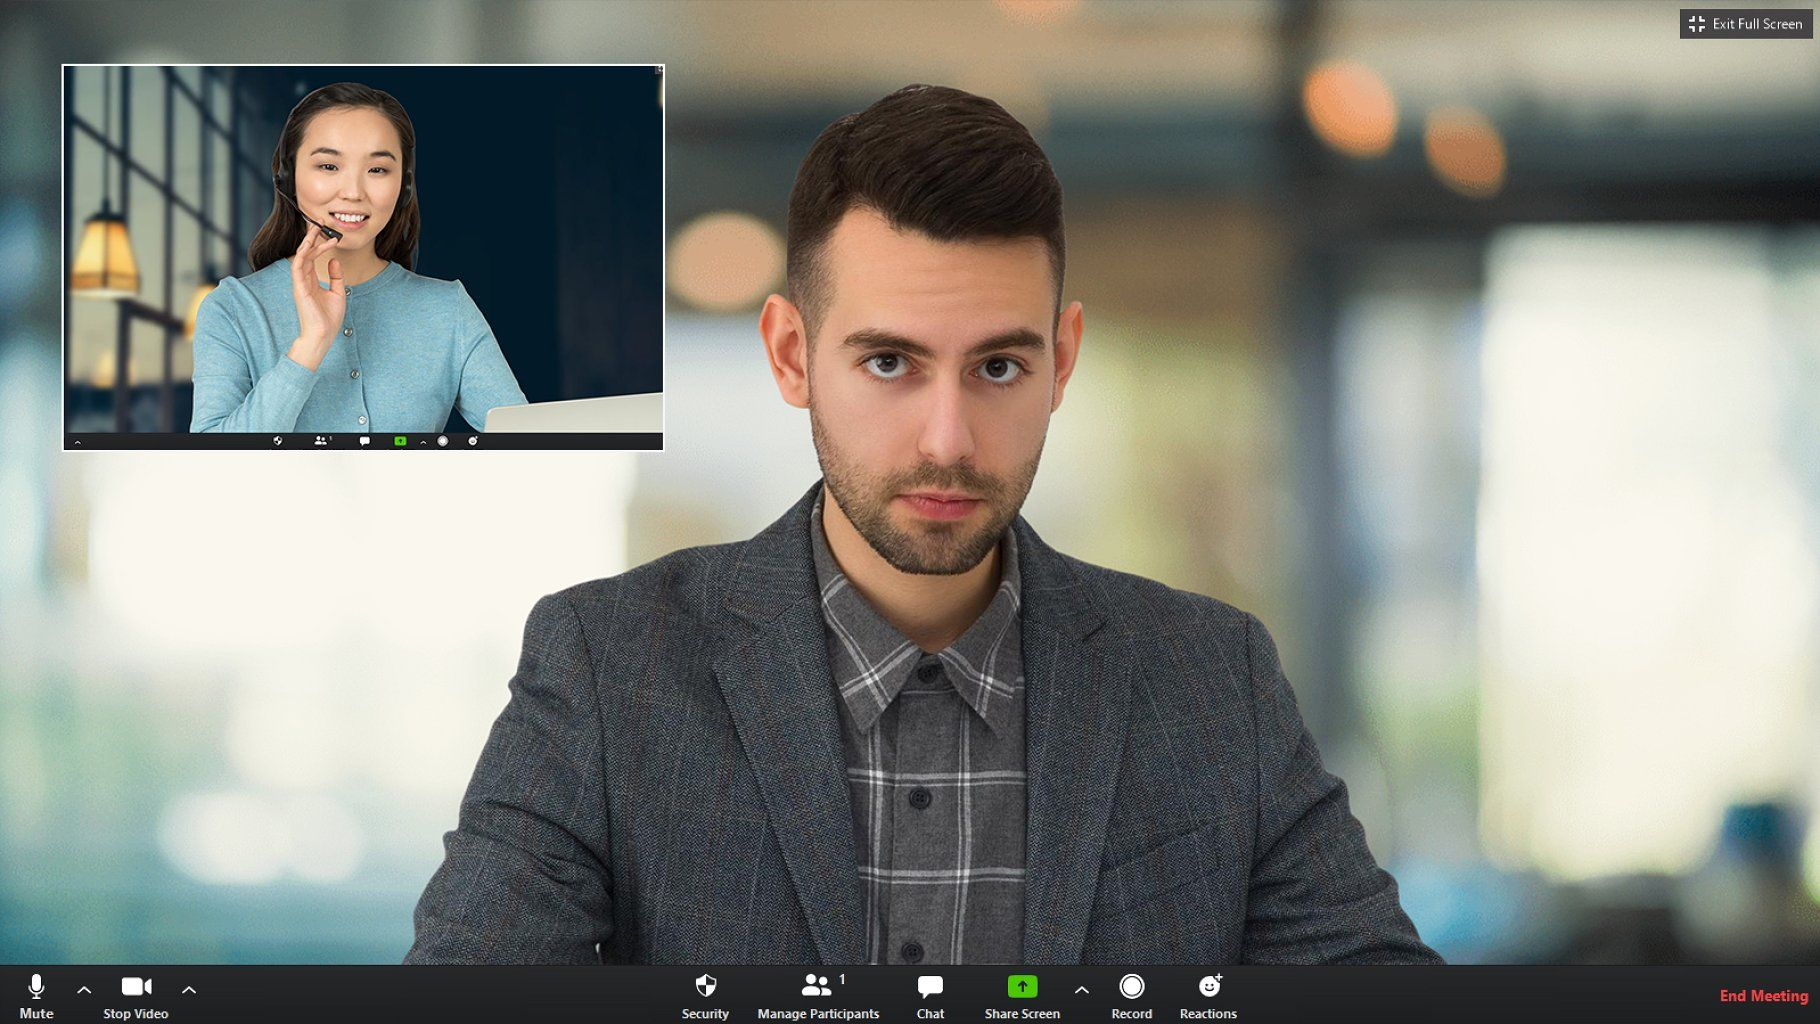 Ad blurred virtual bg for zoom meeting by zp design on